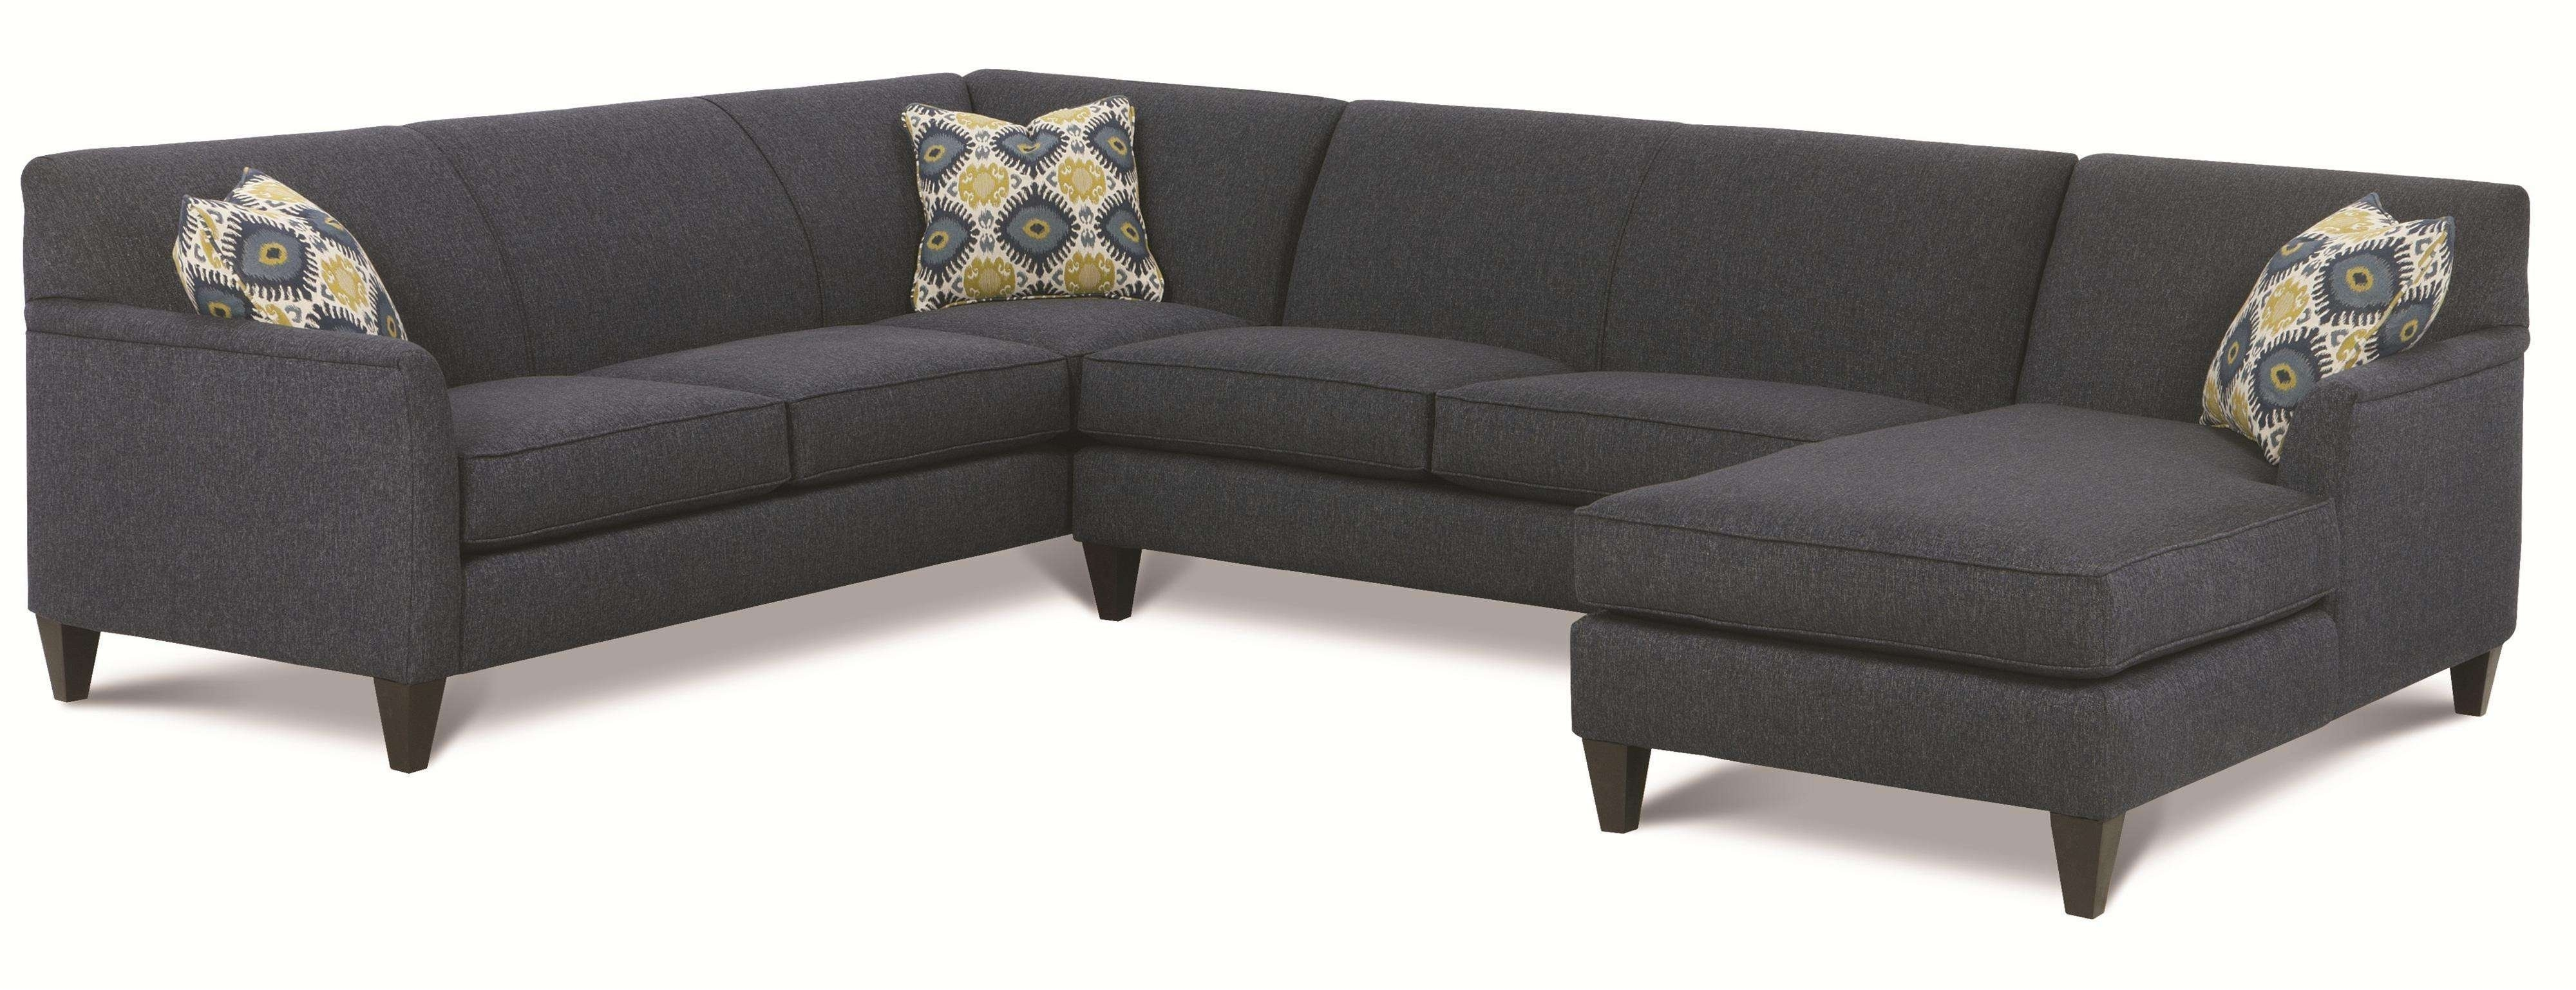 Simple 25 2 Piece Sectionals With Chaise Awesome | Russiandesignshow Pertaining To Aquarius Dark Grey 2 Piece Sectionals With Raf Chaise (View 11 of 25)